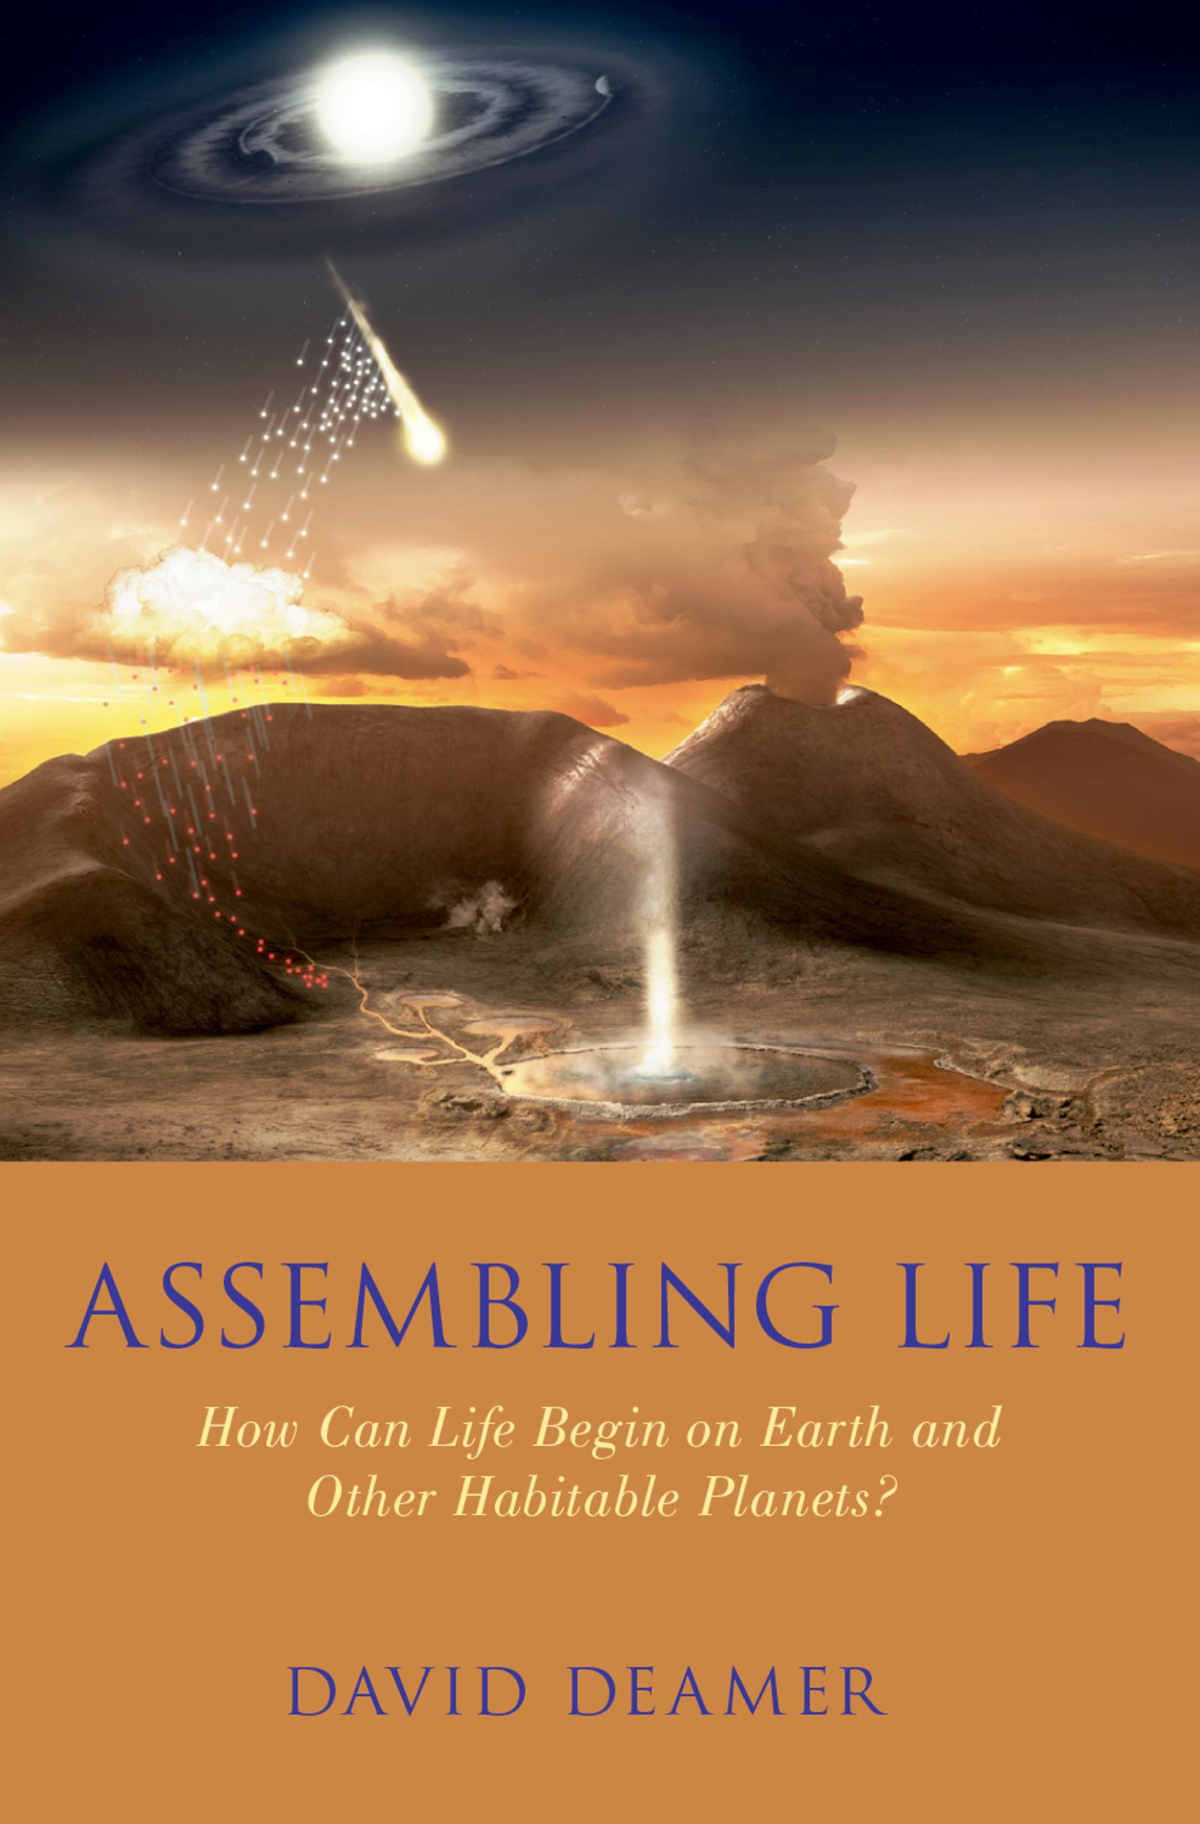 Assembling LifeHow Can Life Begin on Earth and Other Habitable Planets?$